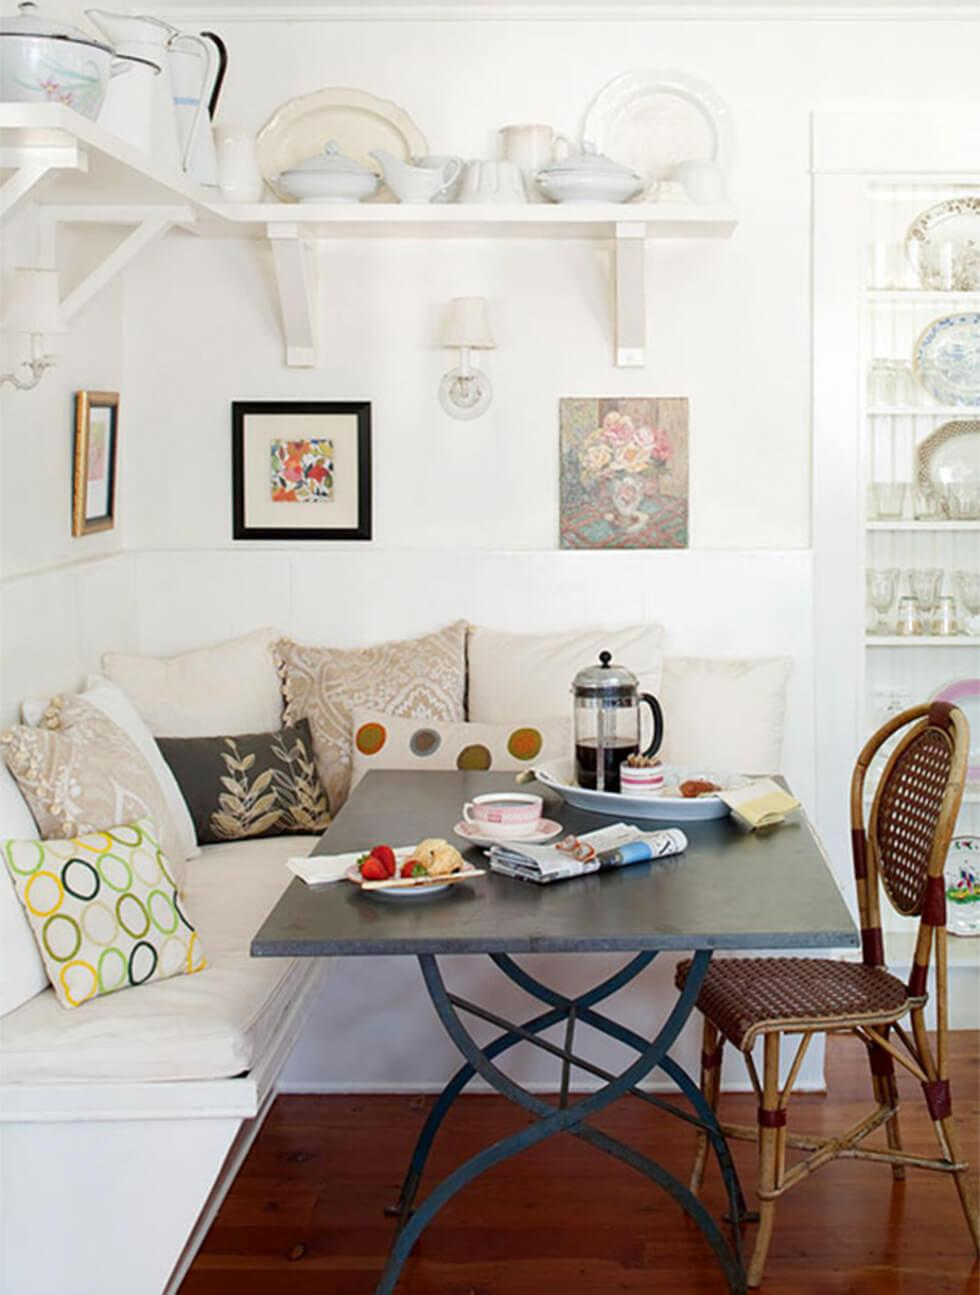 A small dining room with a cream banquette against white walls, framed artwork and a dark dining table